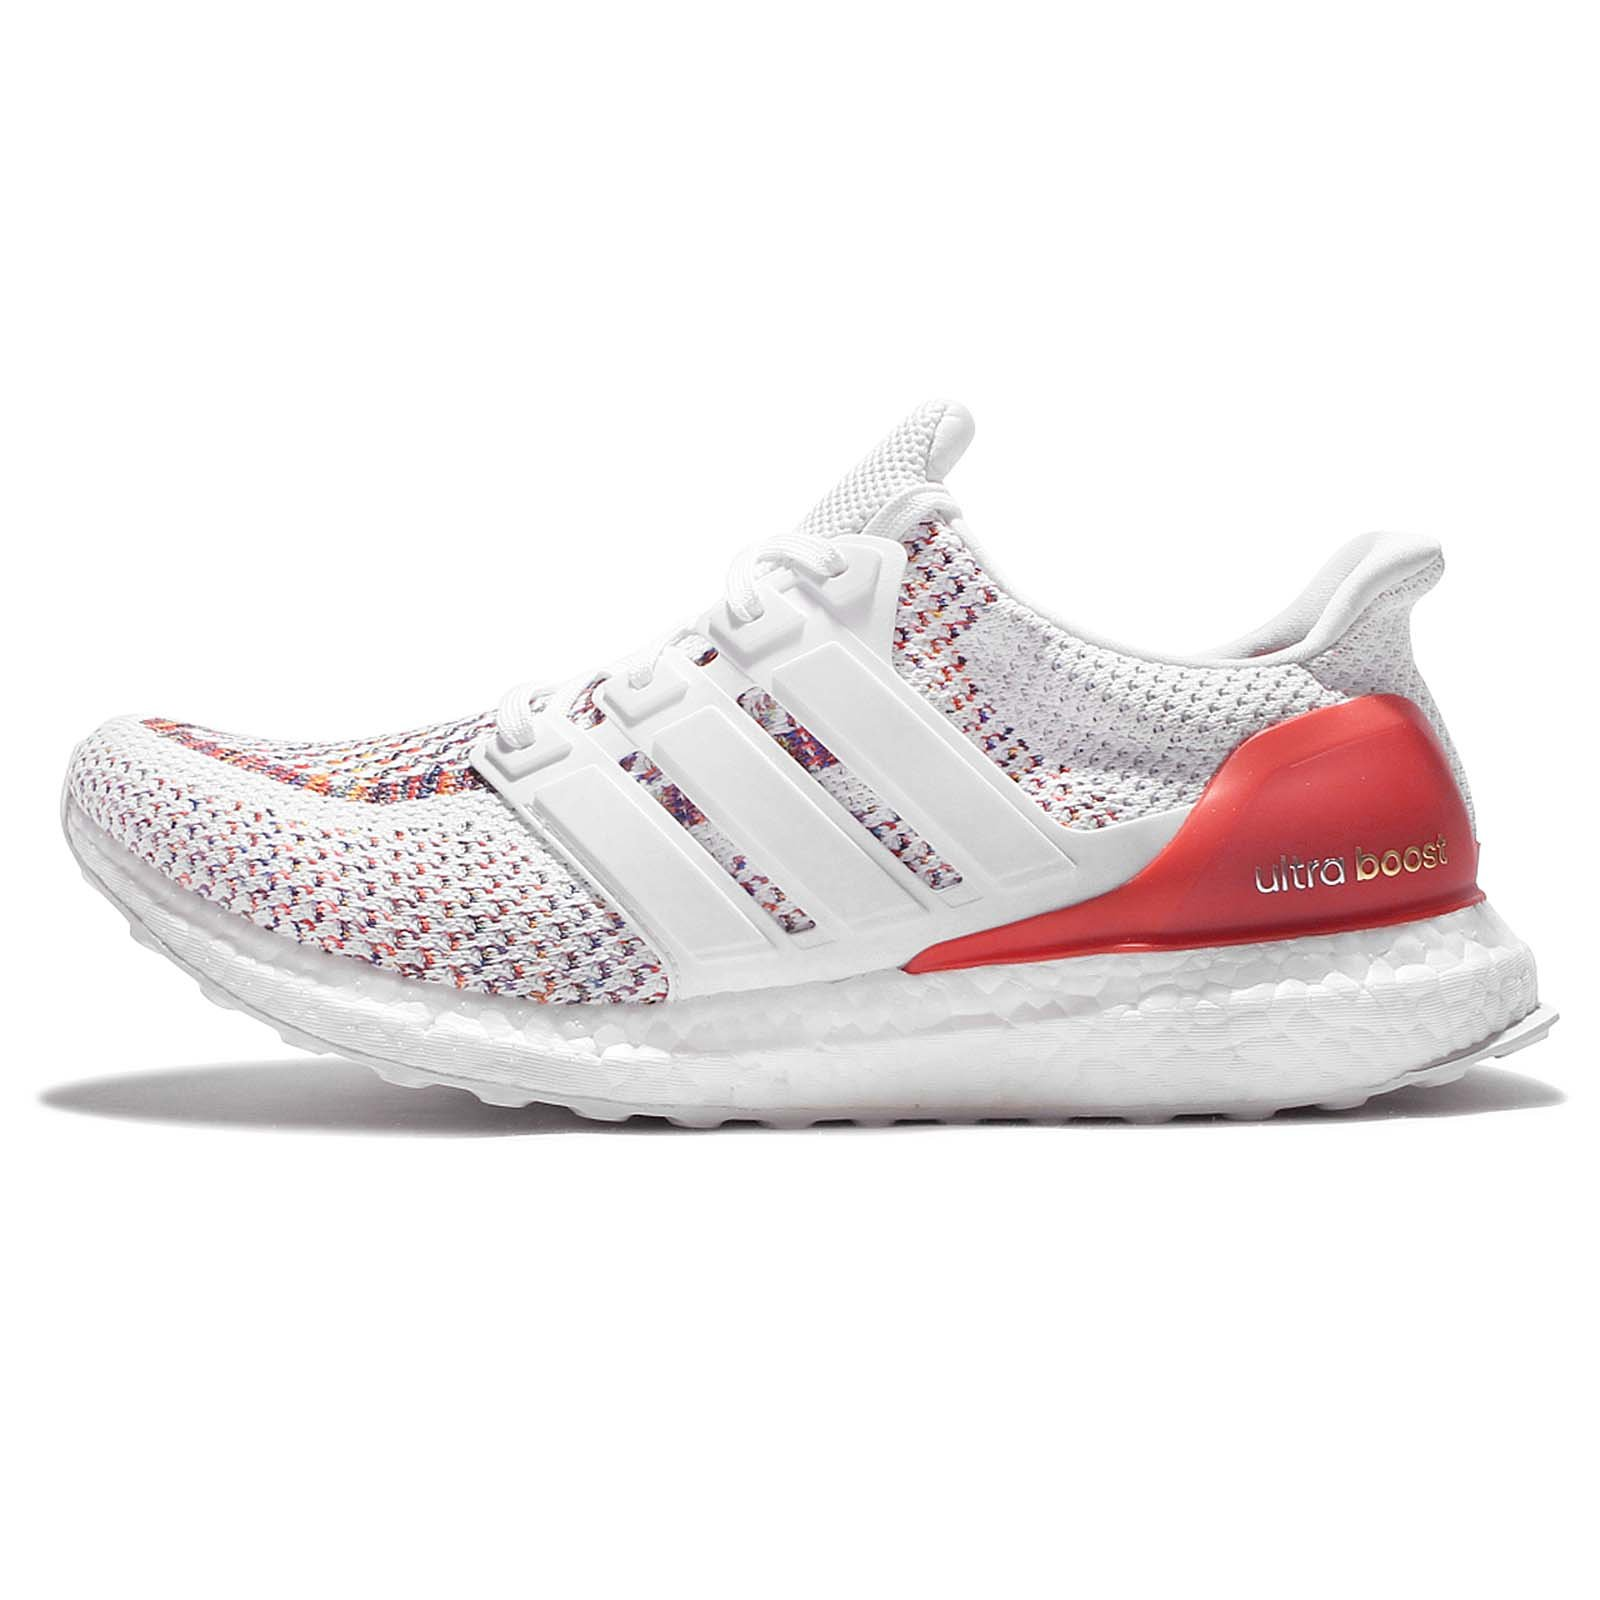 44bf22533ab90 adidas Men's Ultraboost M, White/RED, 8 M US